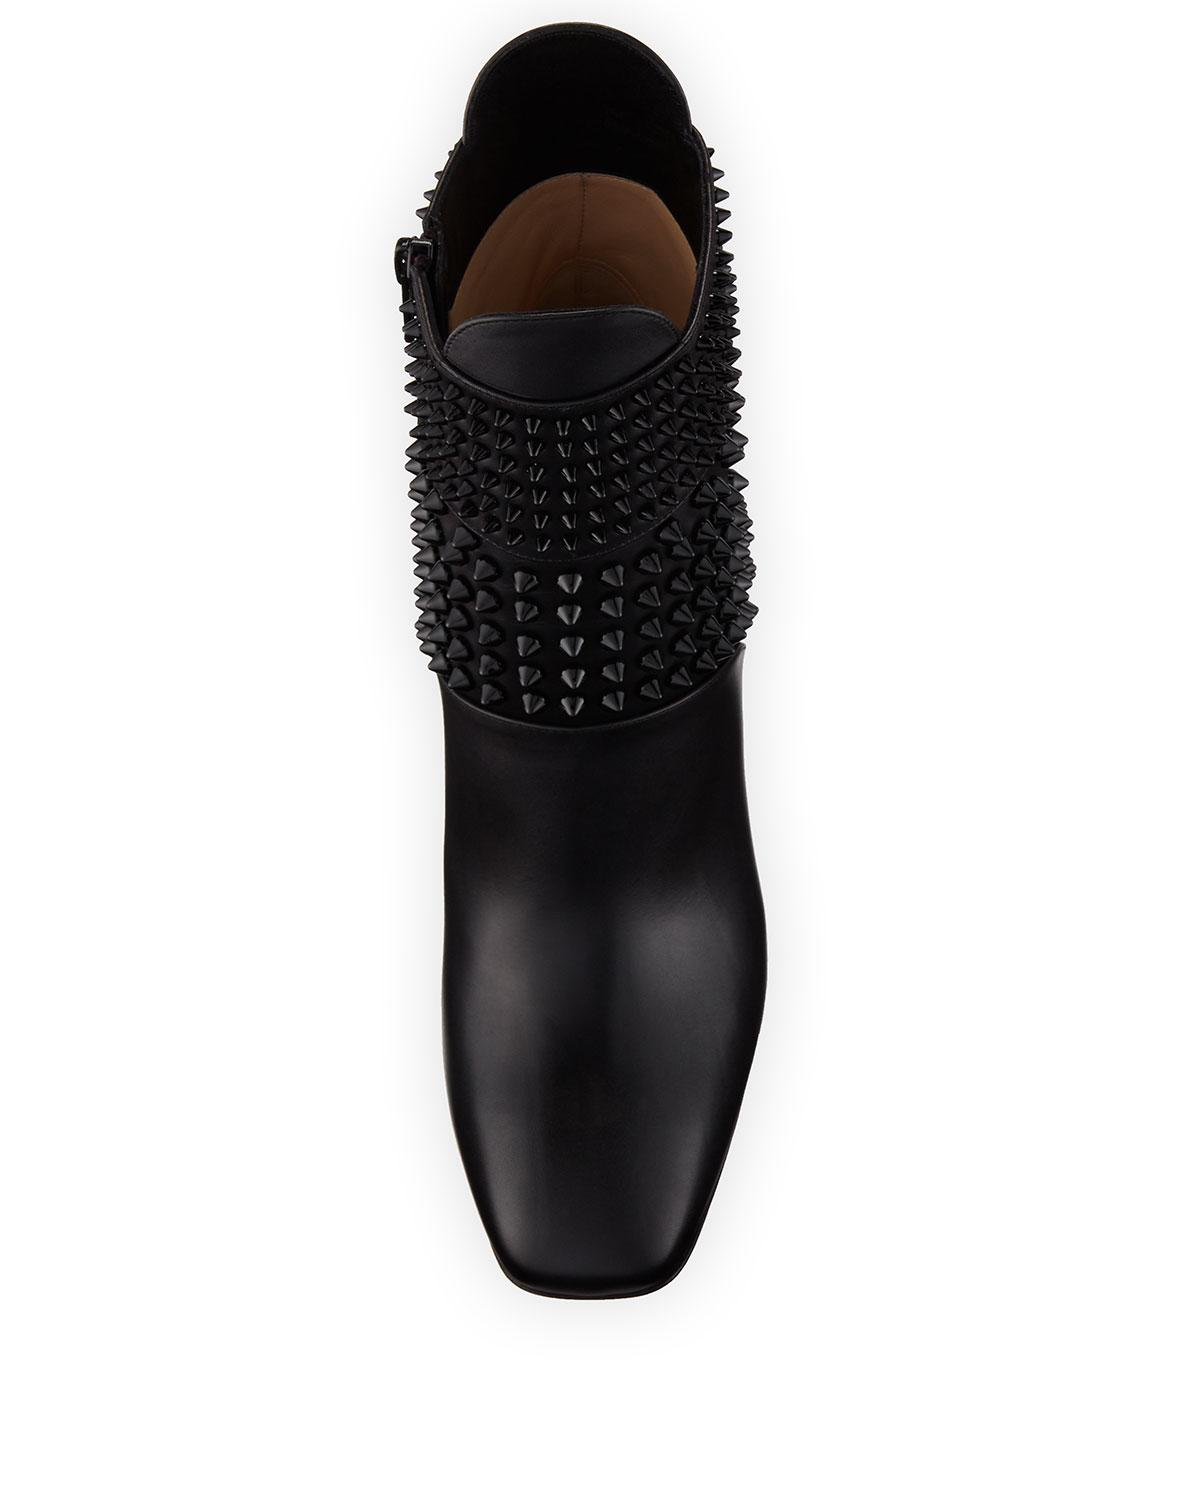 b4119c169eb Lyst - Christian Louboutin Praguoise Studded Leather Ankle Boots in ...